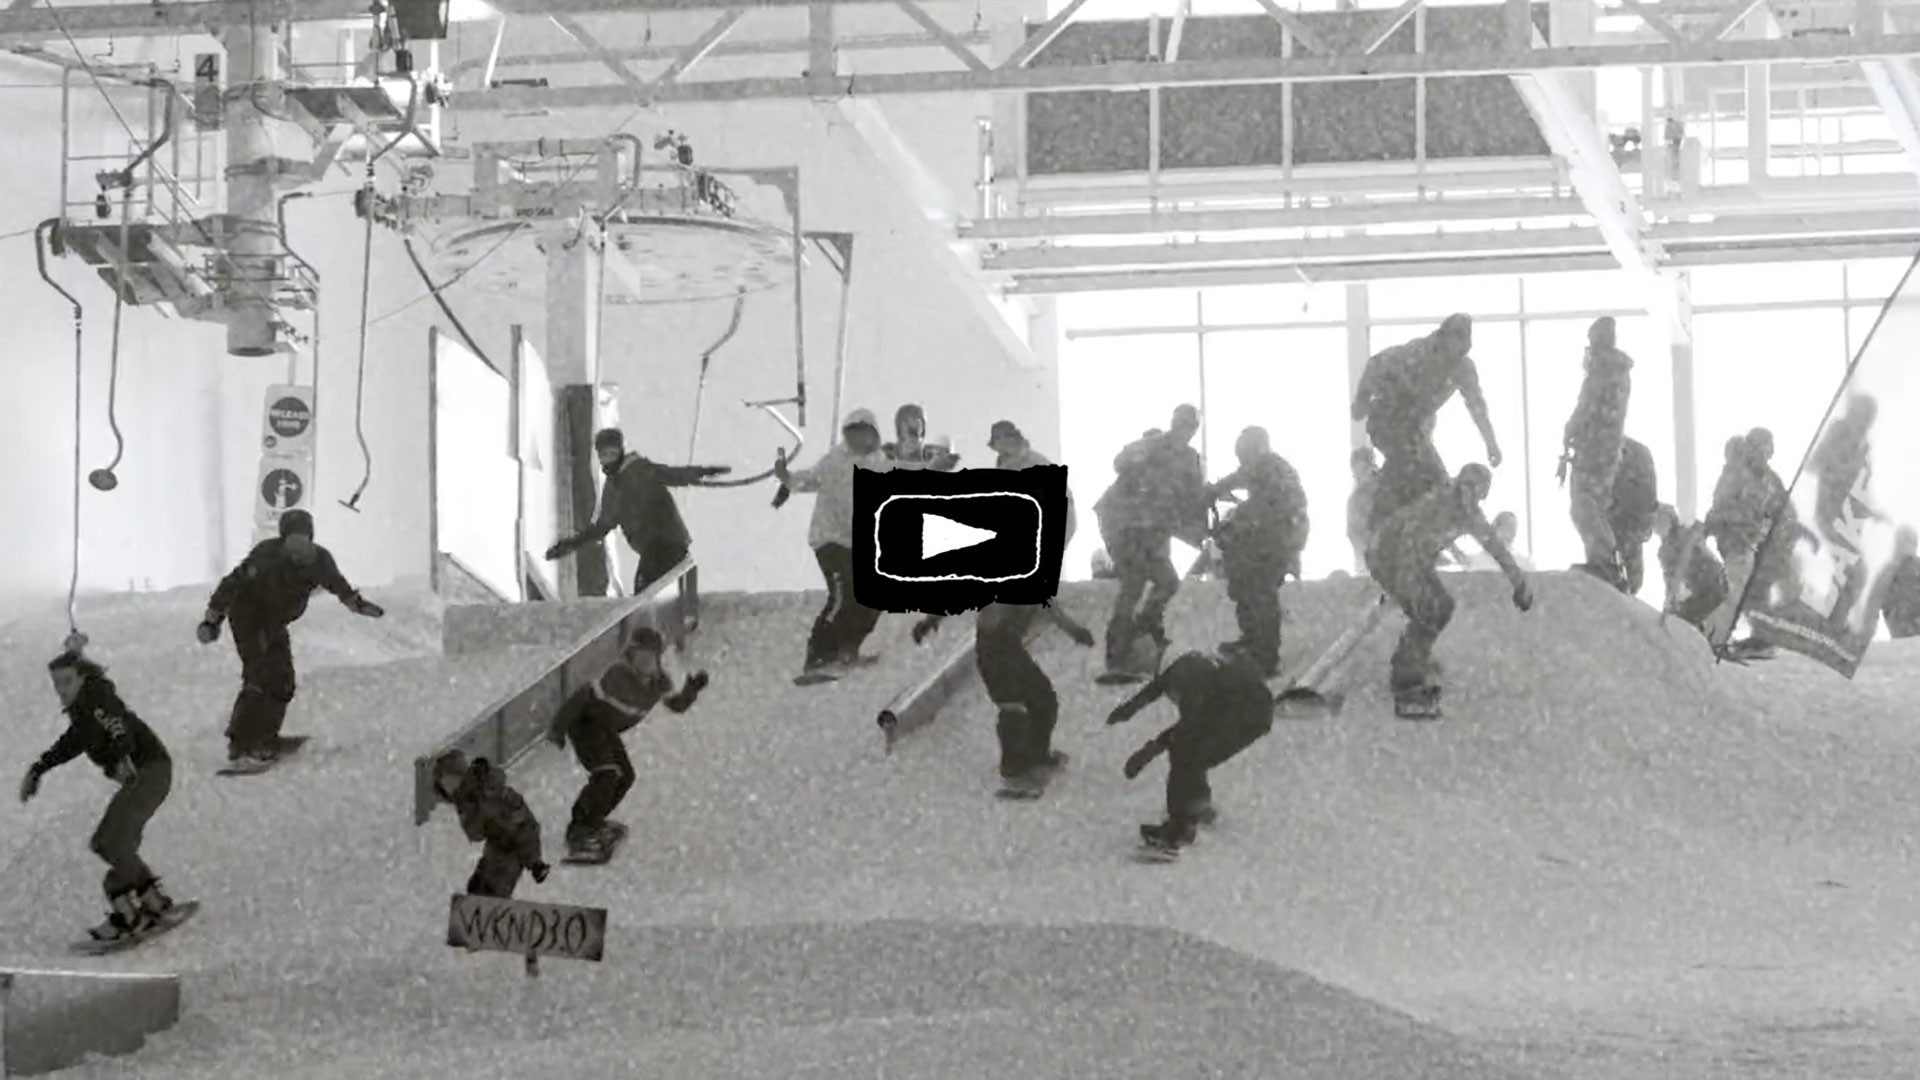 WKND 3.0 Recap—Indoor Snow Dome Contest In The Netherlands